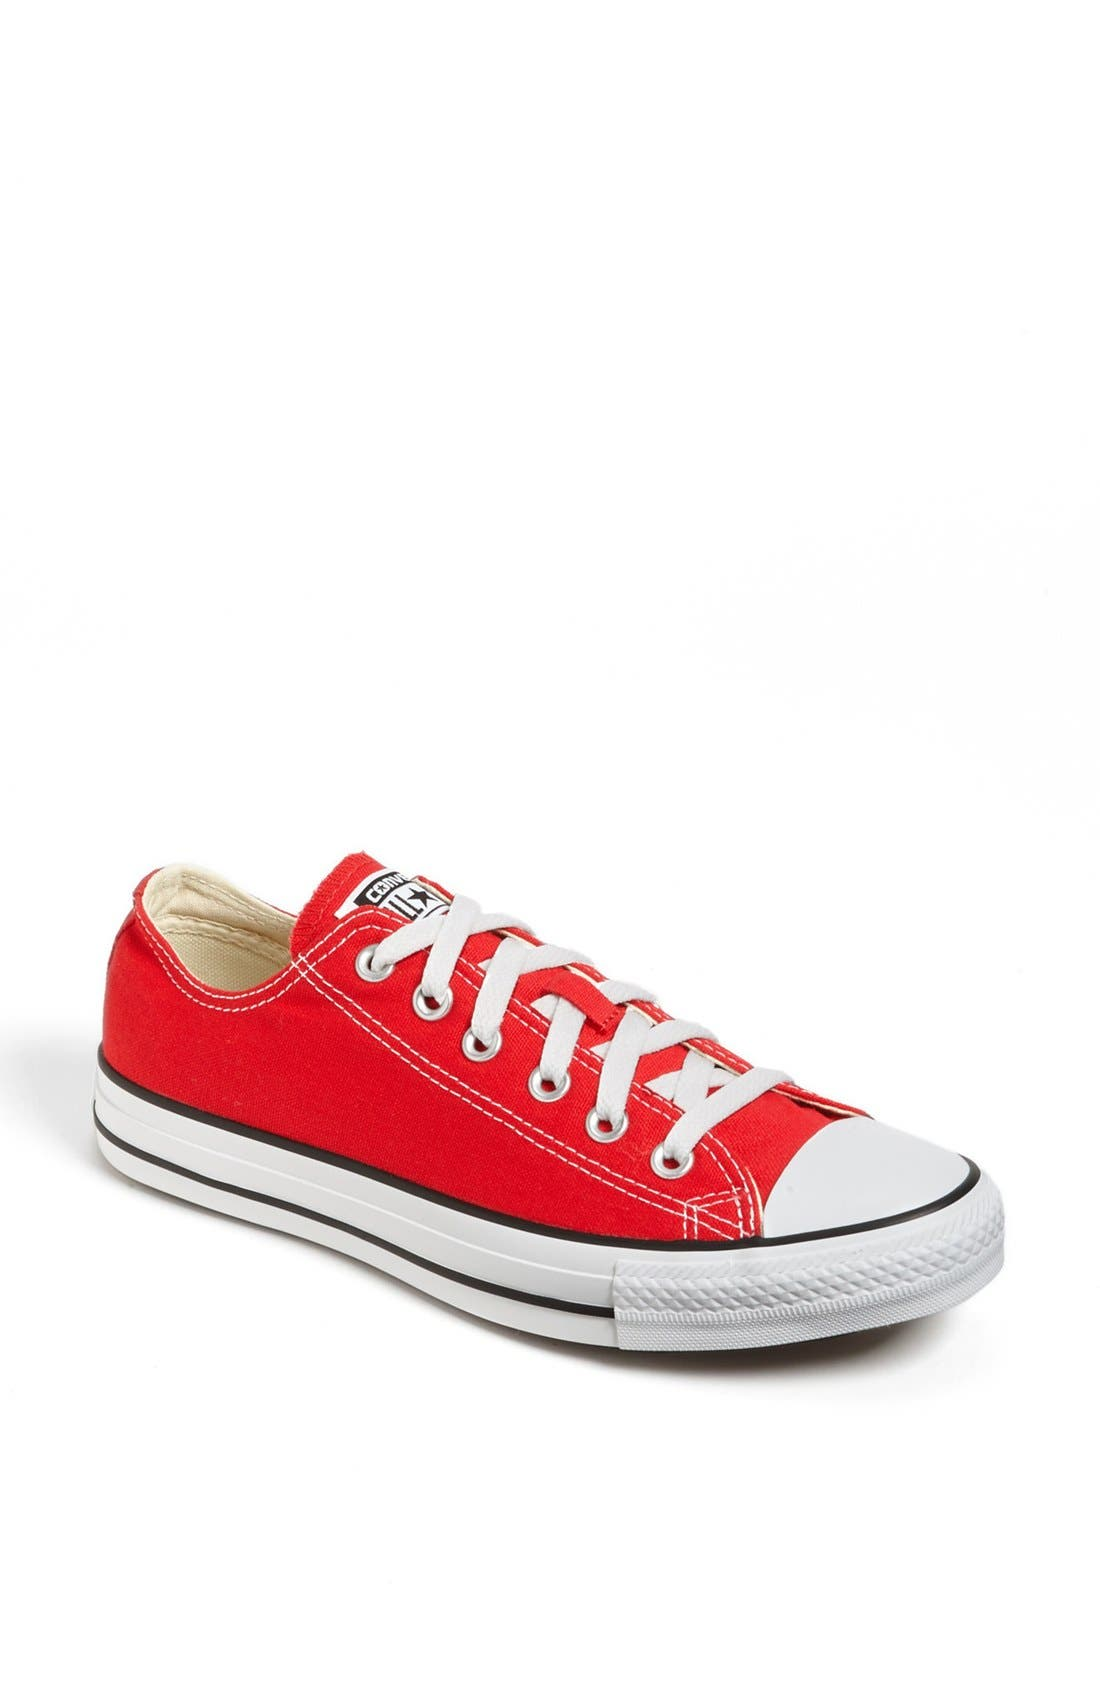 Converse Chuck Taylor Low Top Sneaker- Red